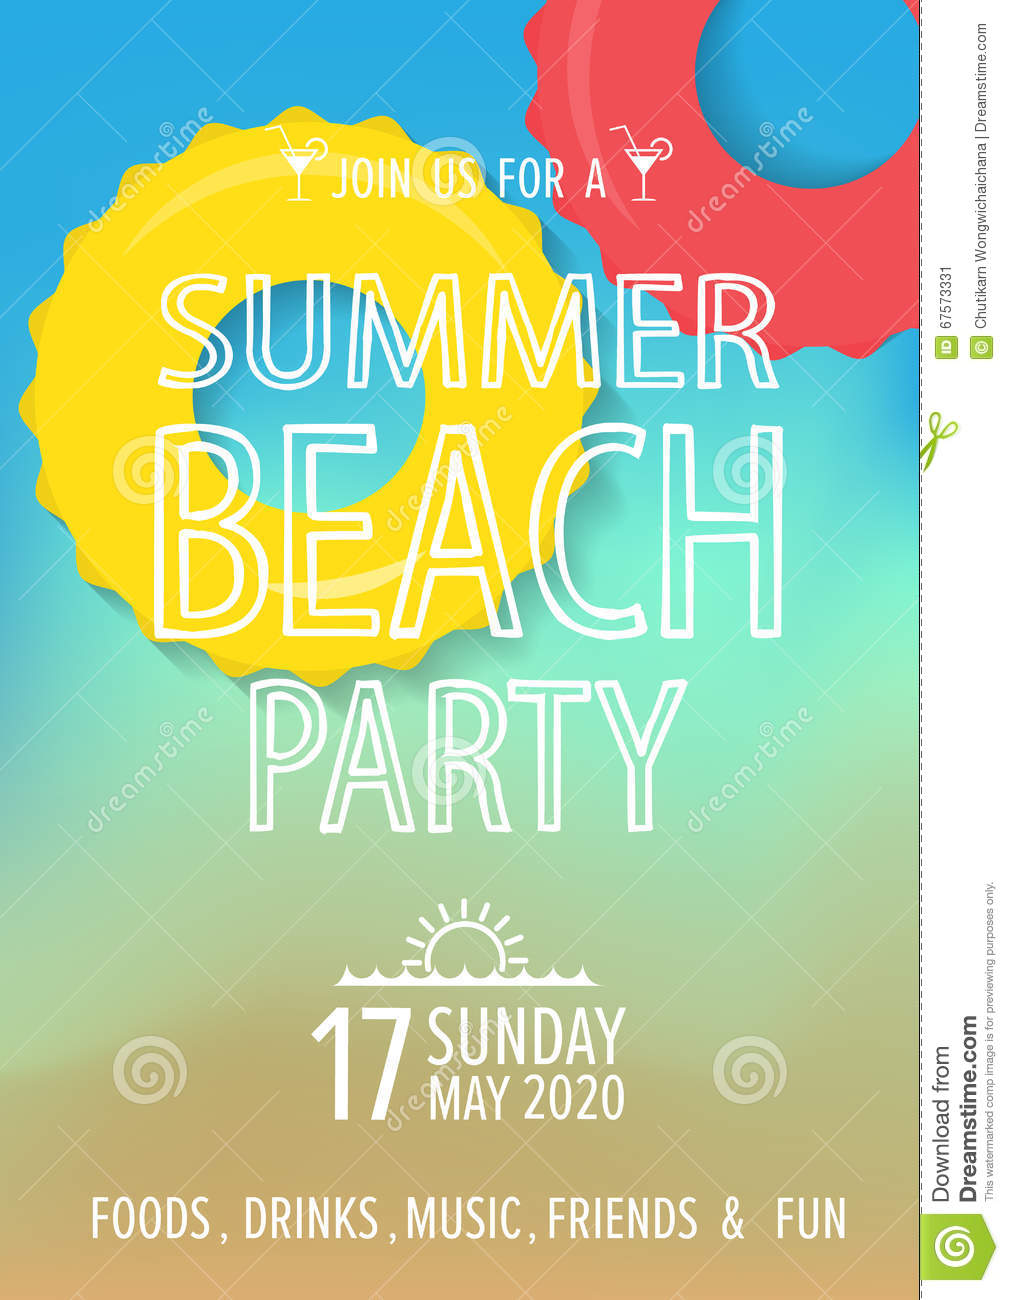 beach party invitation background. vector stock vector - image, Party invitations